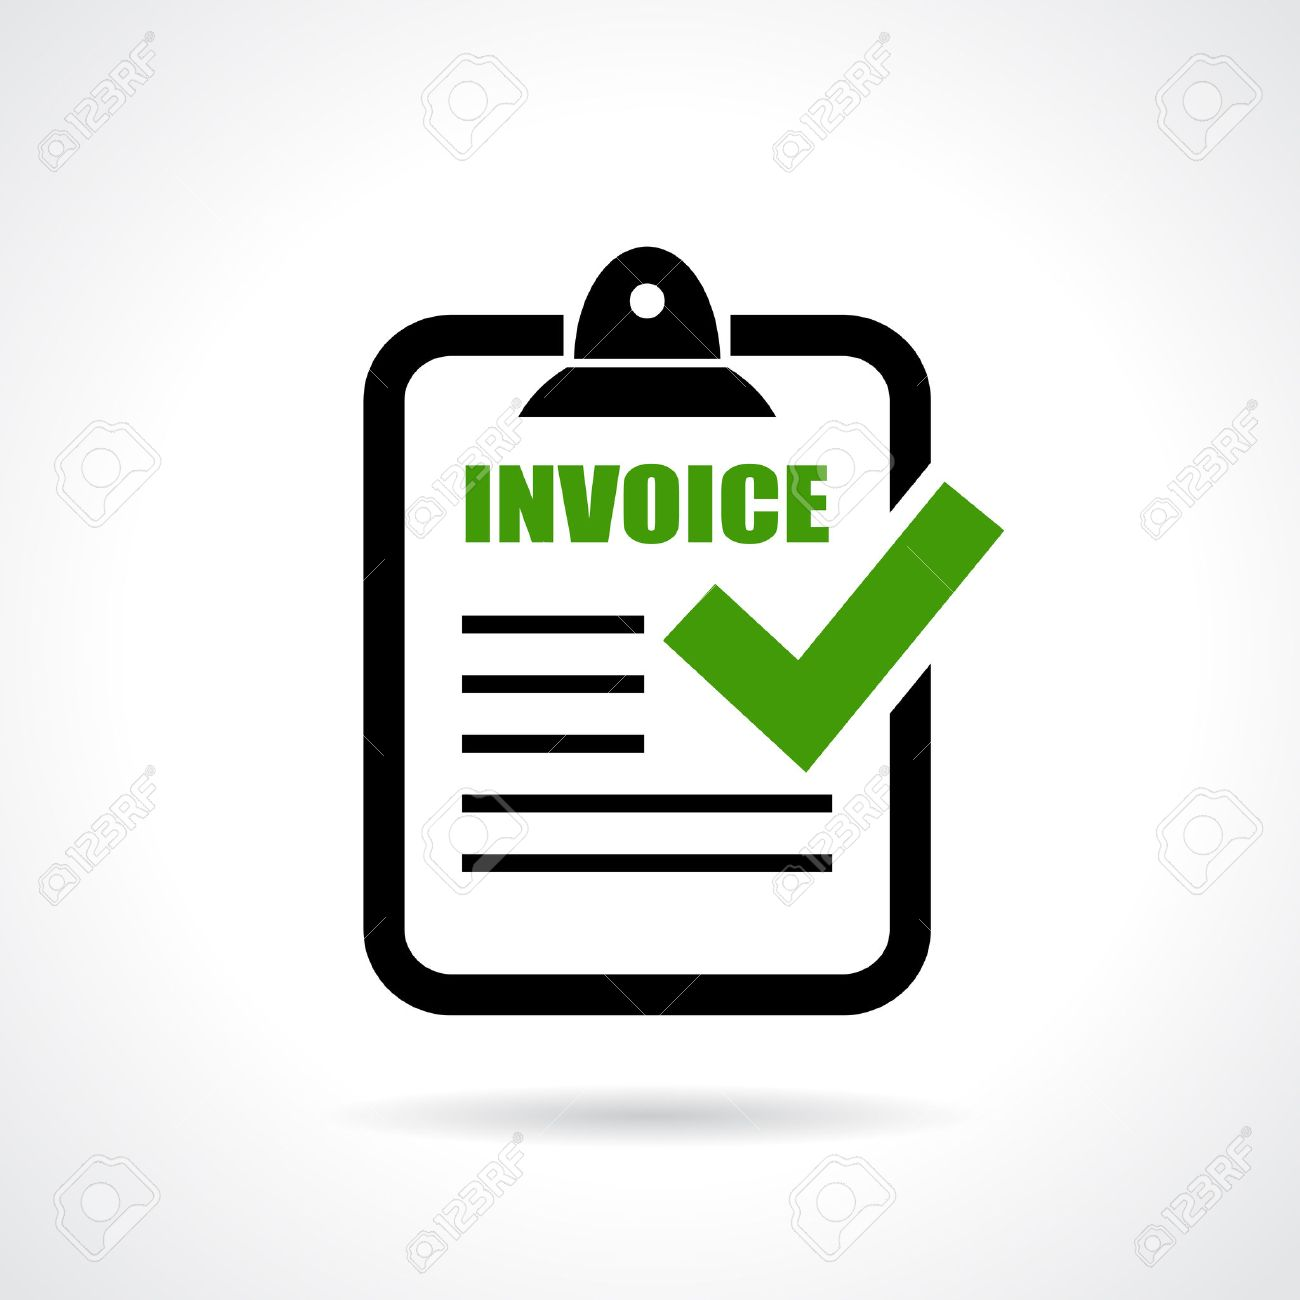 Sale Invoices Invoice Images  Stock Pictures Royalty Free Invoice Photos And  Sample Of Acknowledge Receipt with Free Printable Cash Receipt Template Pdf Invoice Invoice Icon Illustration What Is A Gross Receipt Word